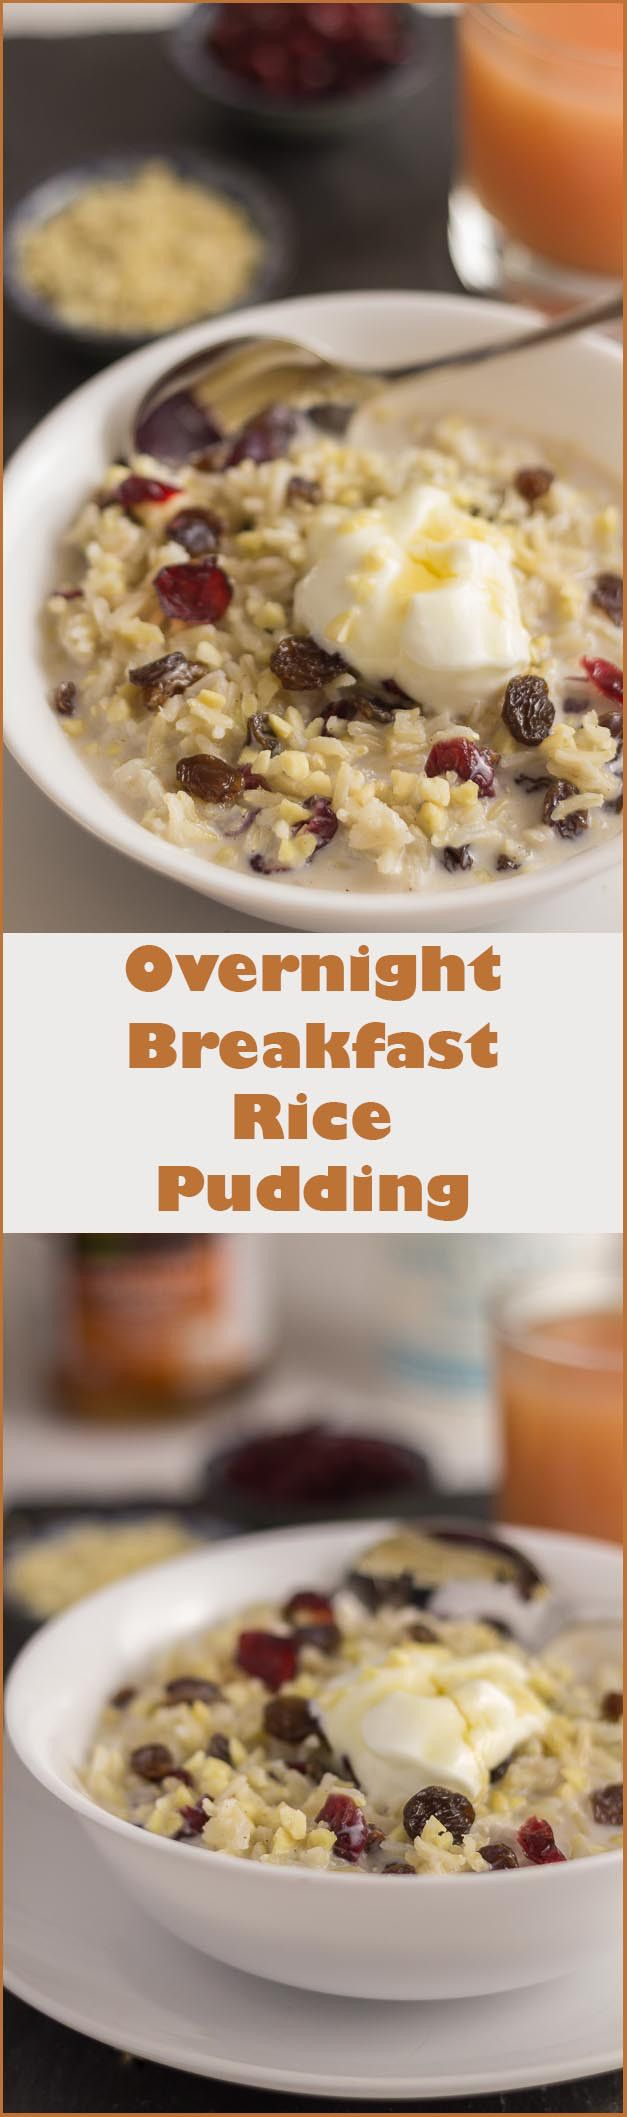 A naturally sweet tasting and filling wholegrain overnight breakfast rice pudding breakfast. Breakfasts will never be the same again.